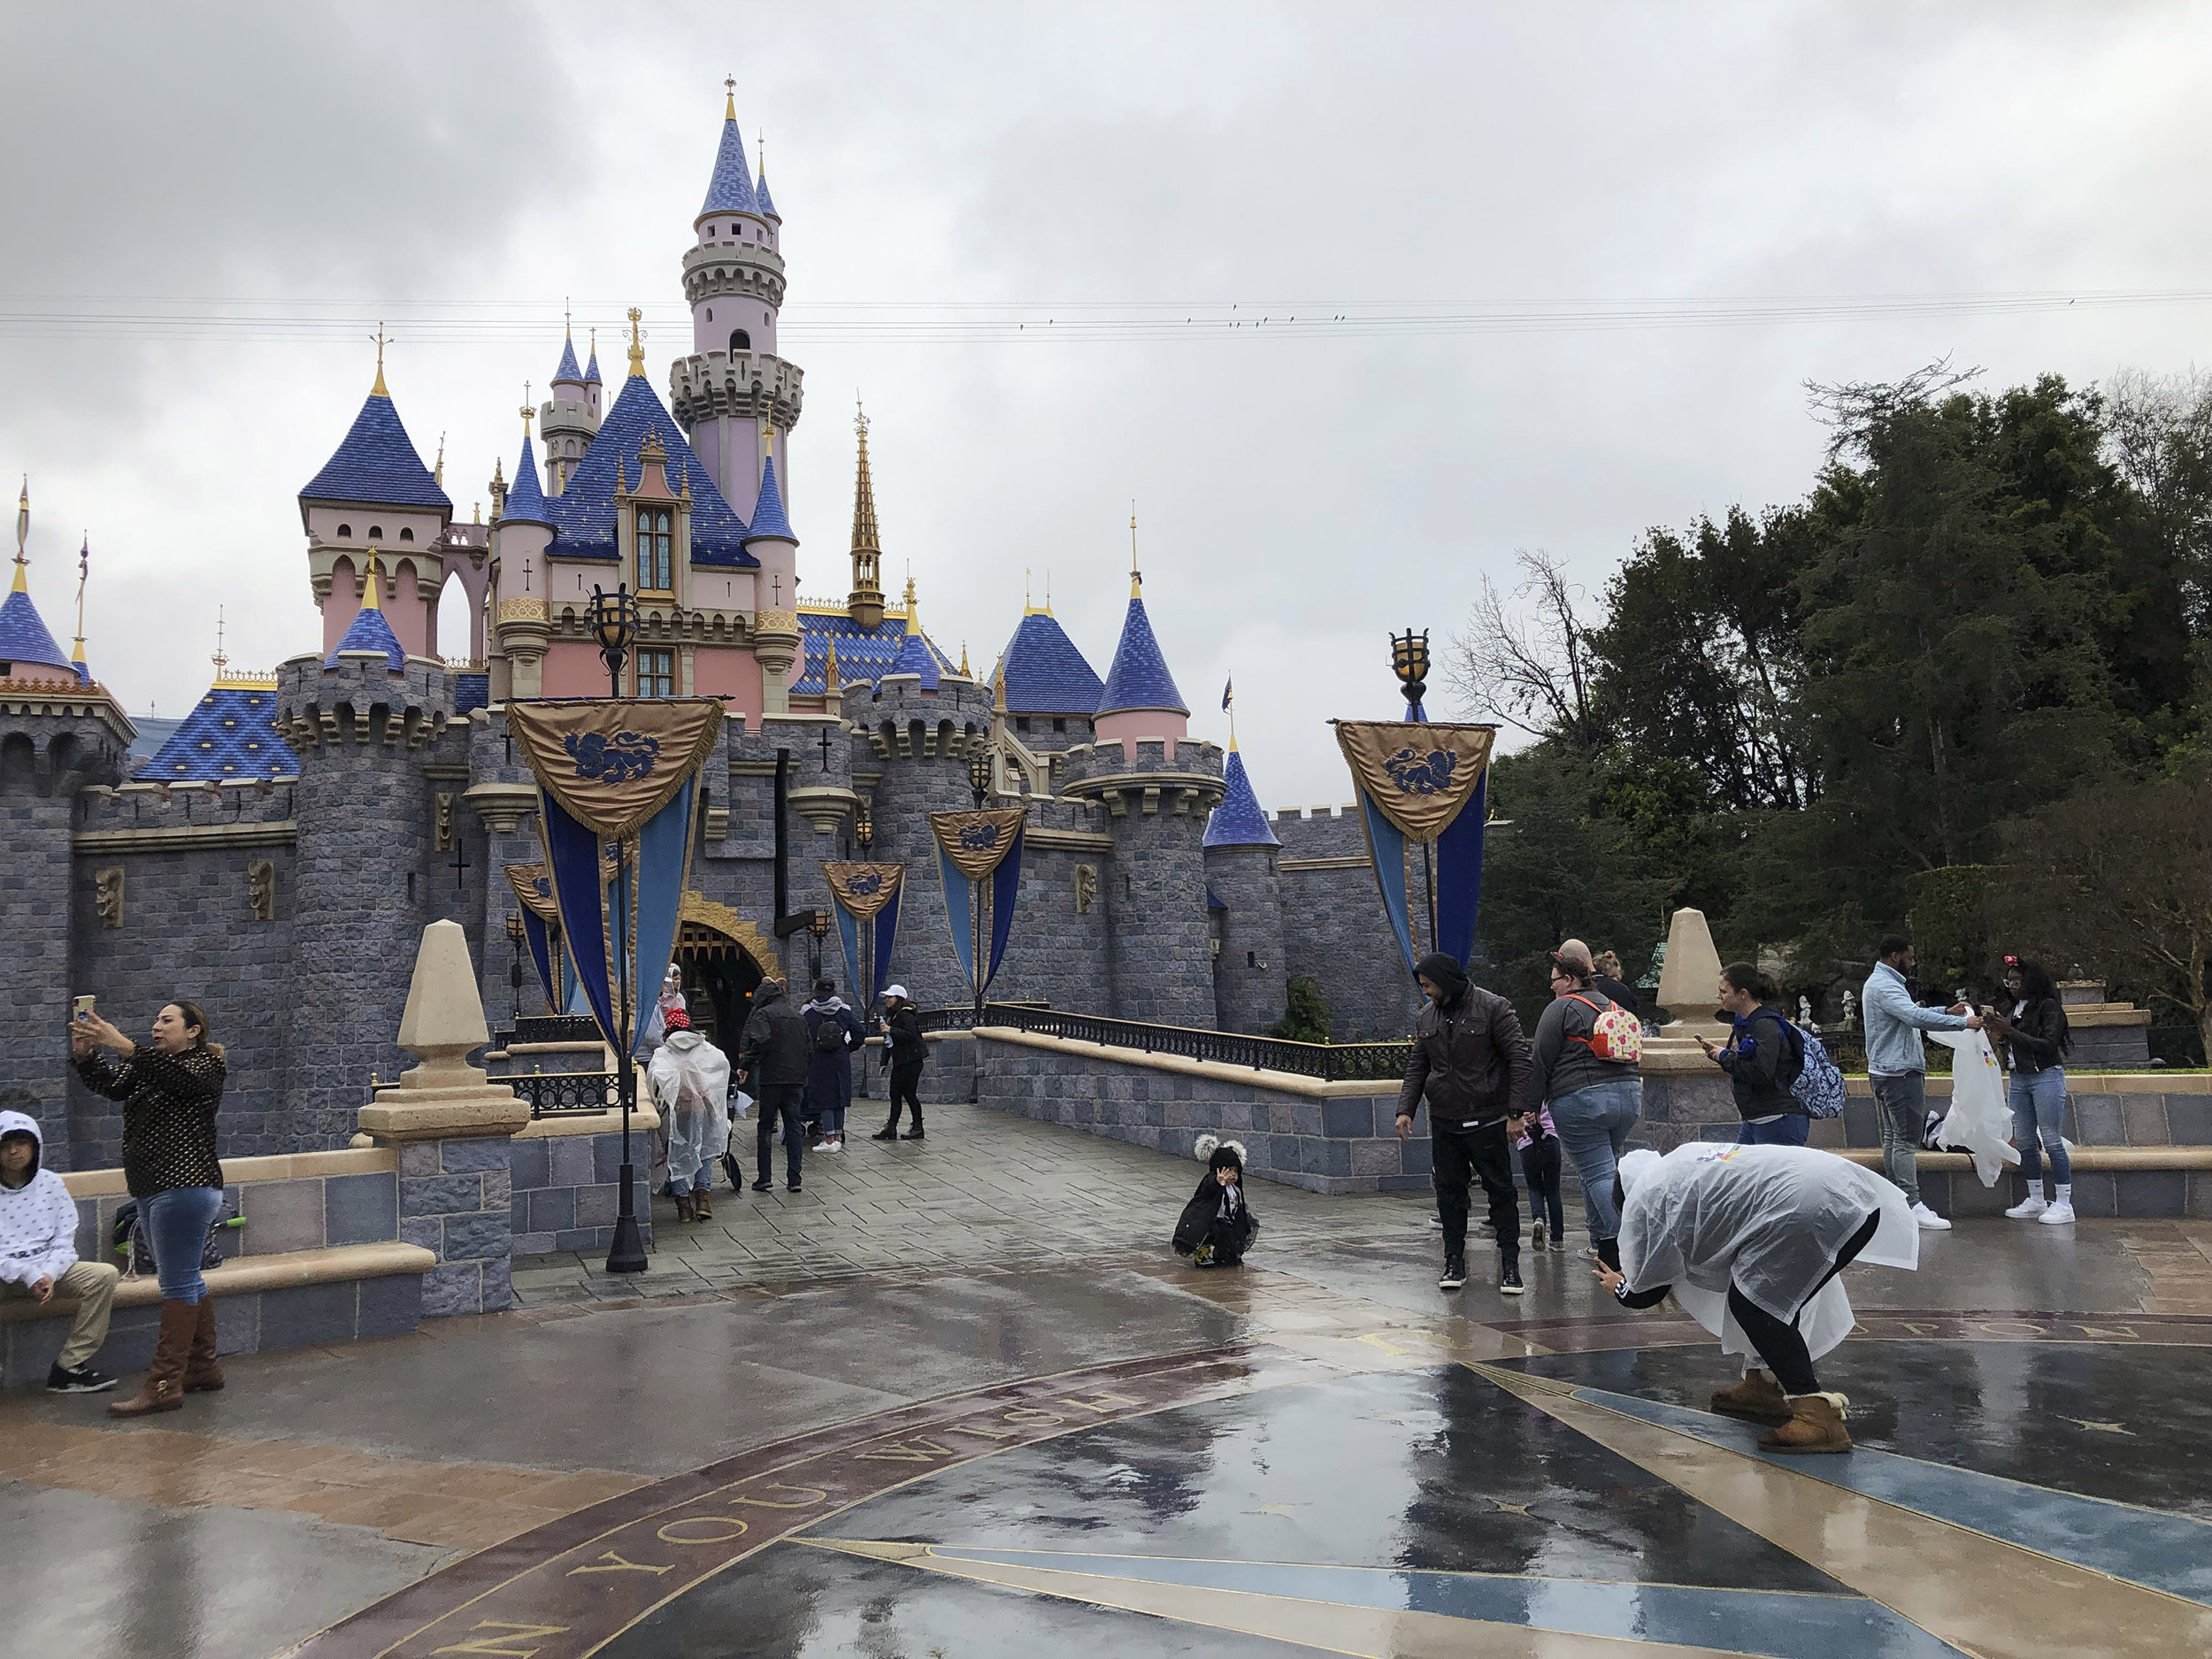 Visitors take photos at Disneyland in Anaheim, California, on Friday, March 13.